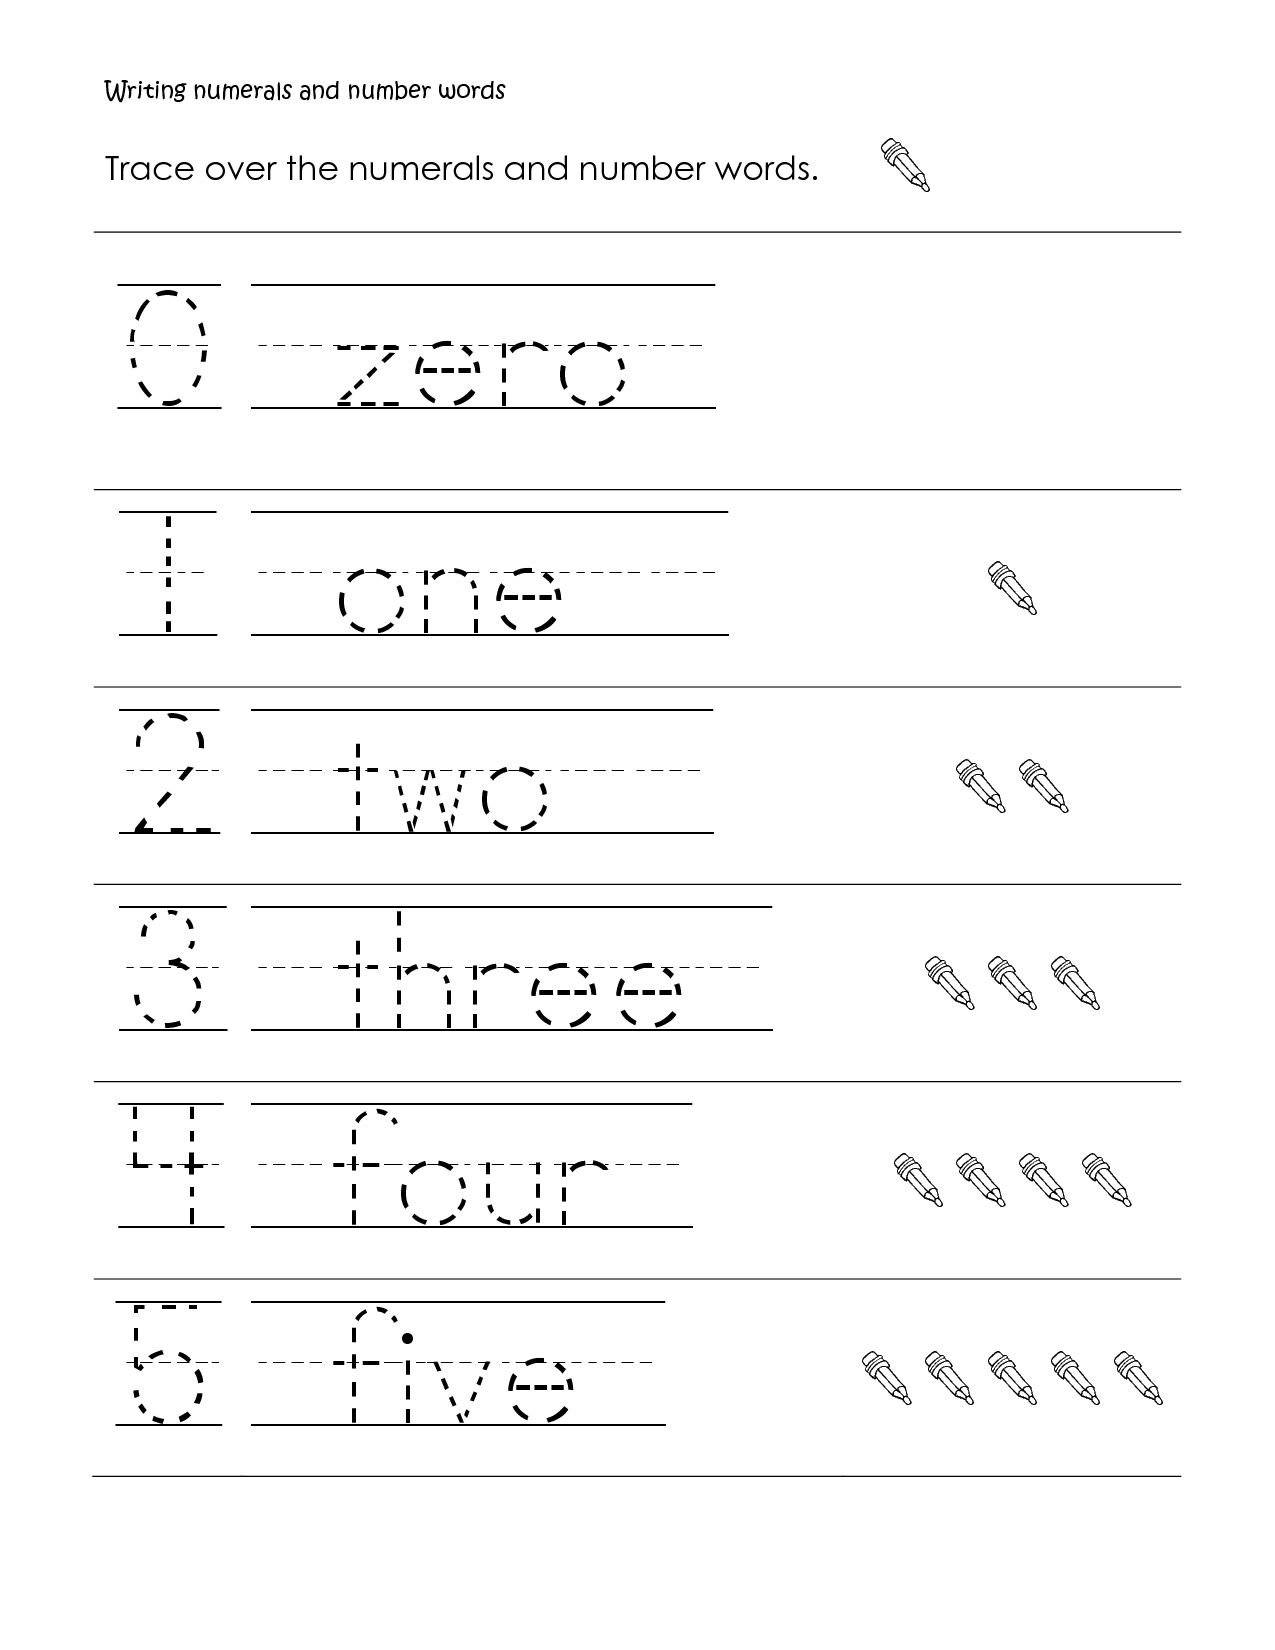 Worksheets Writing Worksheets For First Grade first grade math worksheet writing numbers and number words